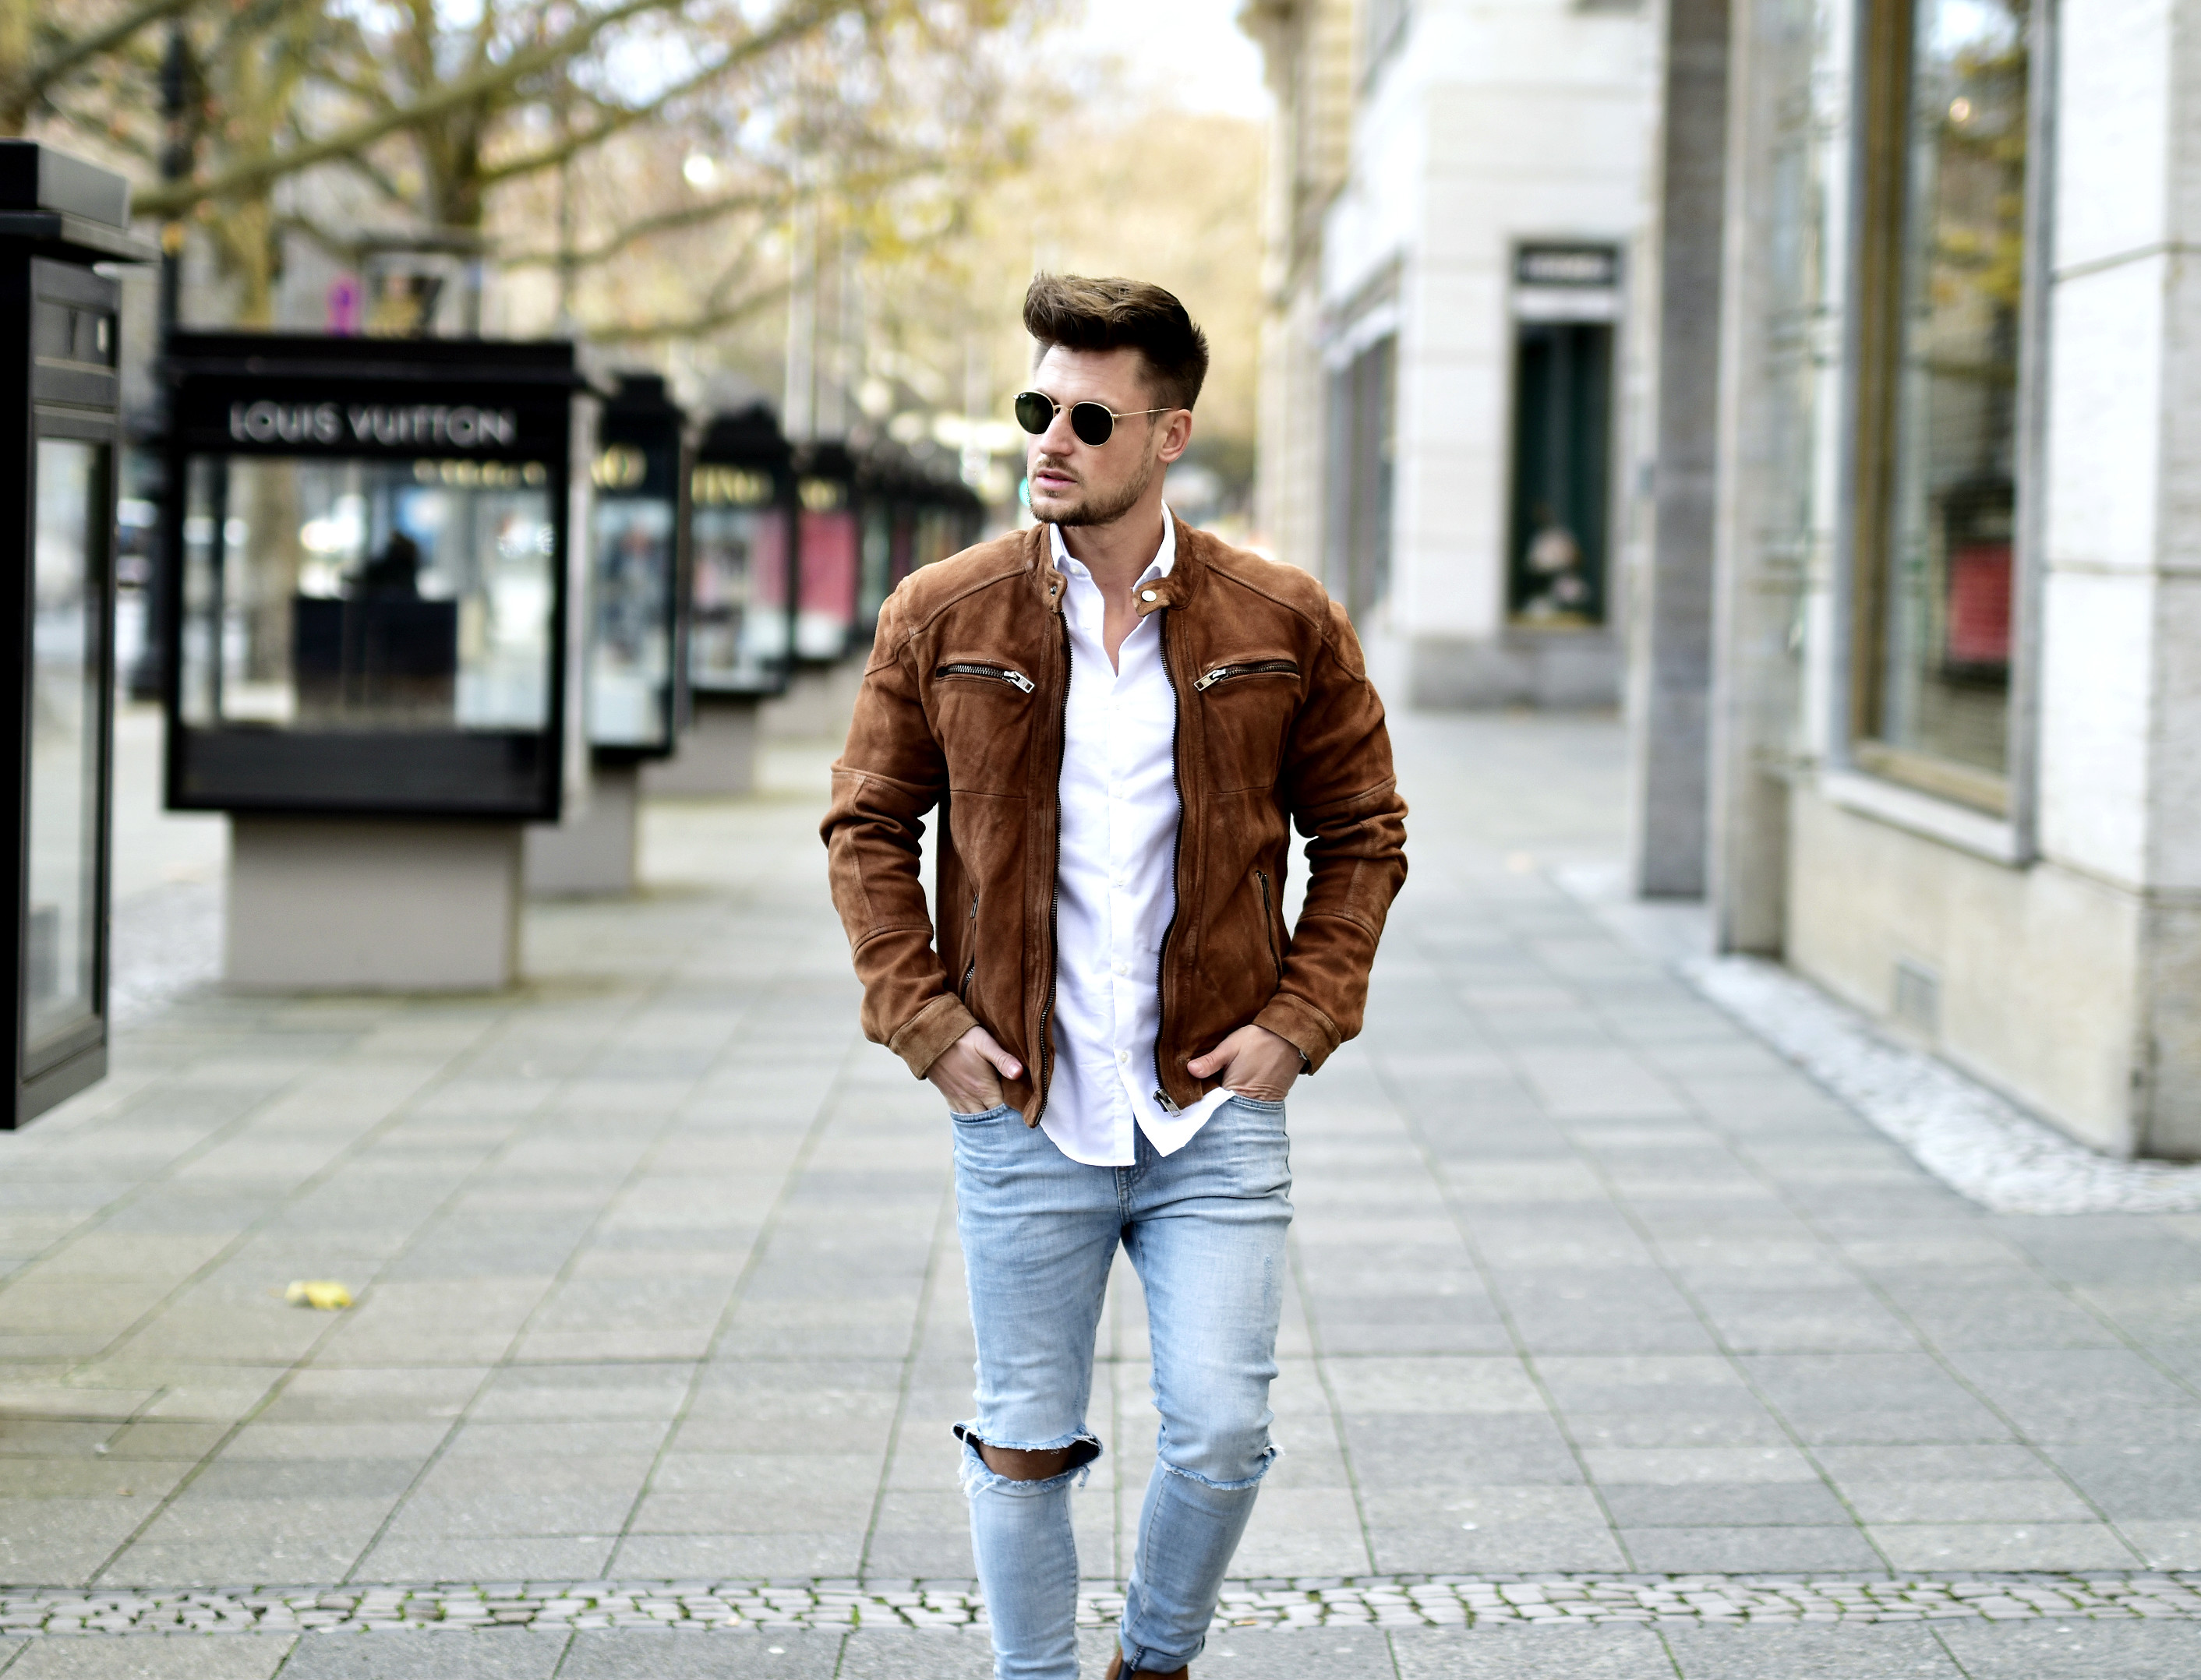 tommeezjerry-styleblog-maennerblog-maenner-modeblog-berlin-berlinblog-maennermodeblog-outfit-lederjacke-beedgy-movado-chelsea-boots-4